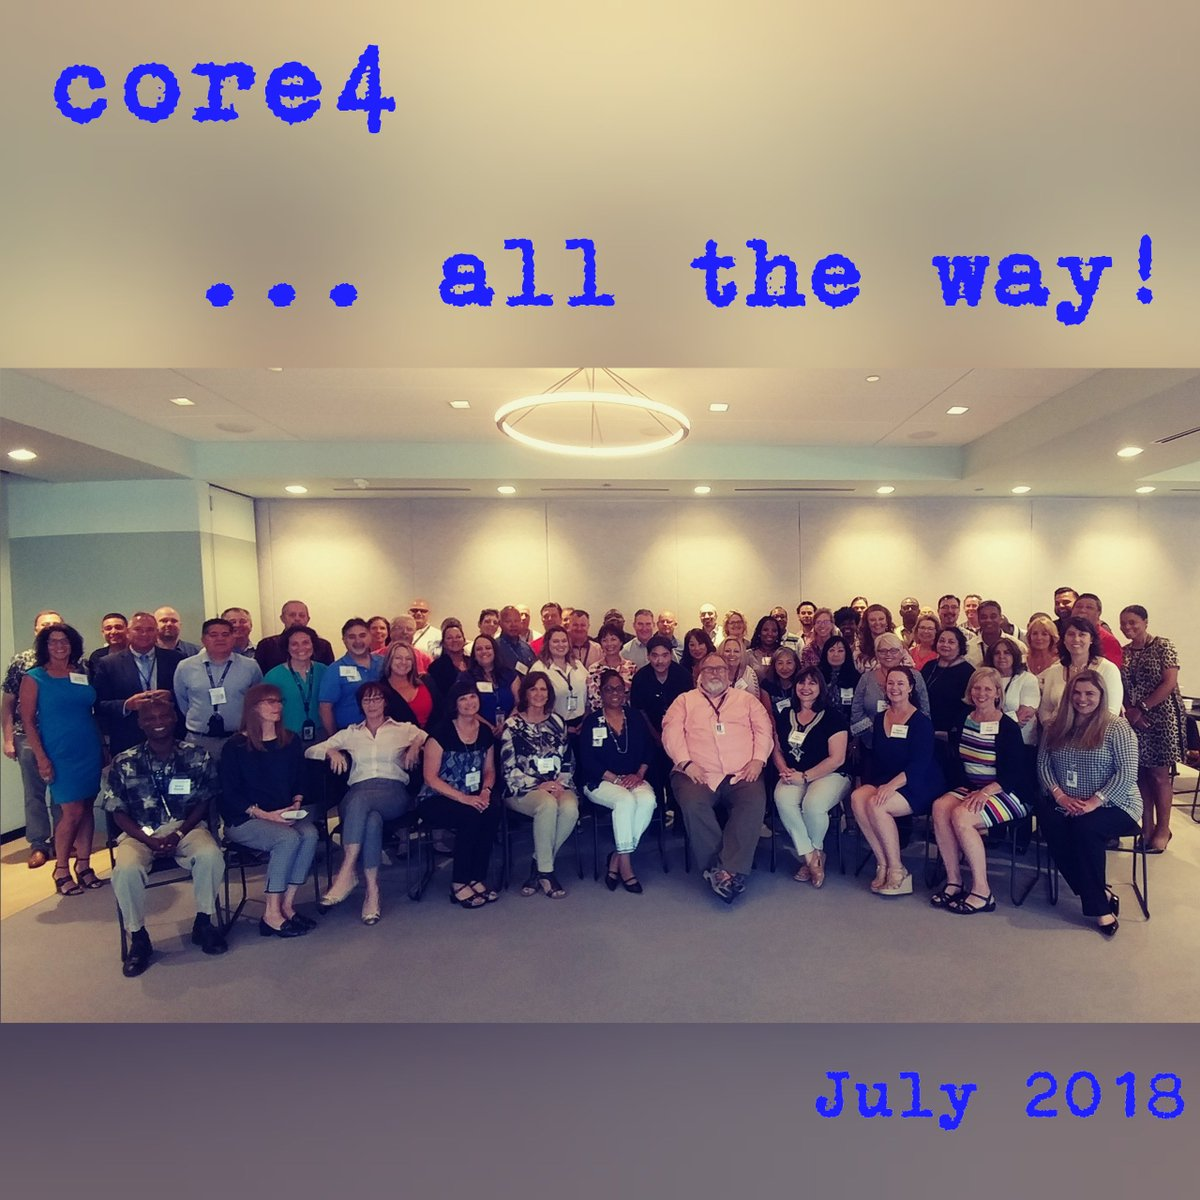 Here they are ....... the most dedicated, talented and extraordinary training team anywhere! So fortunate to work with this group everyday, truly the BEST! @weareunited #beingunited #core4